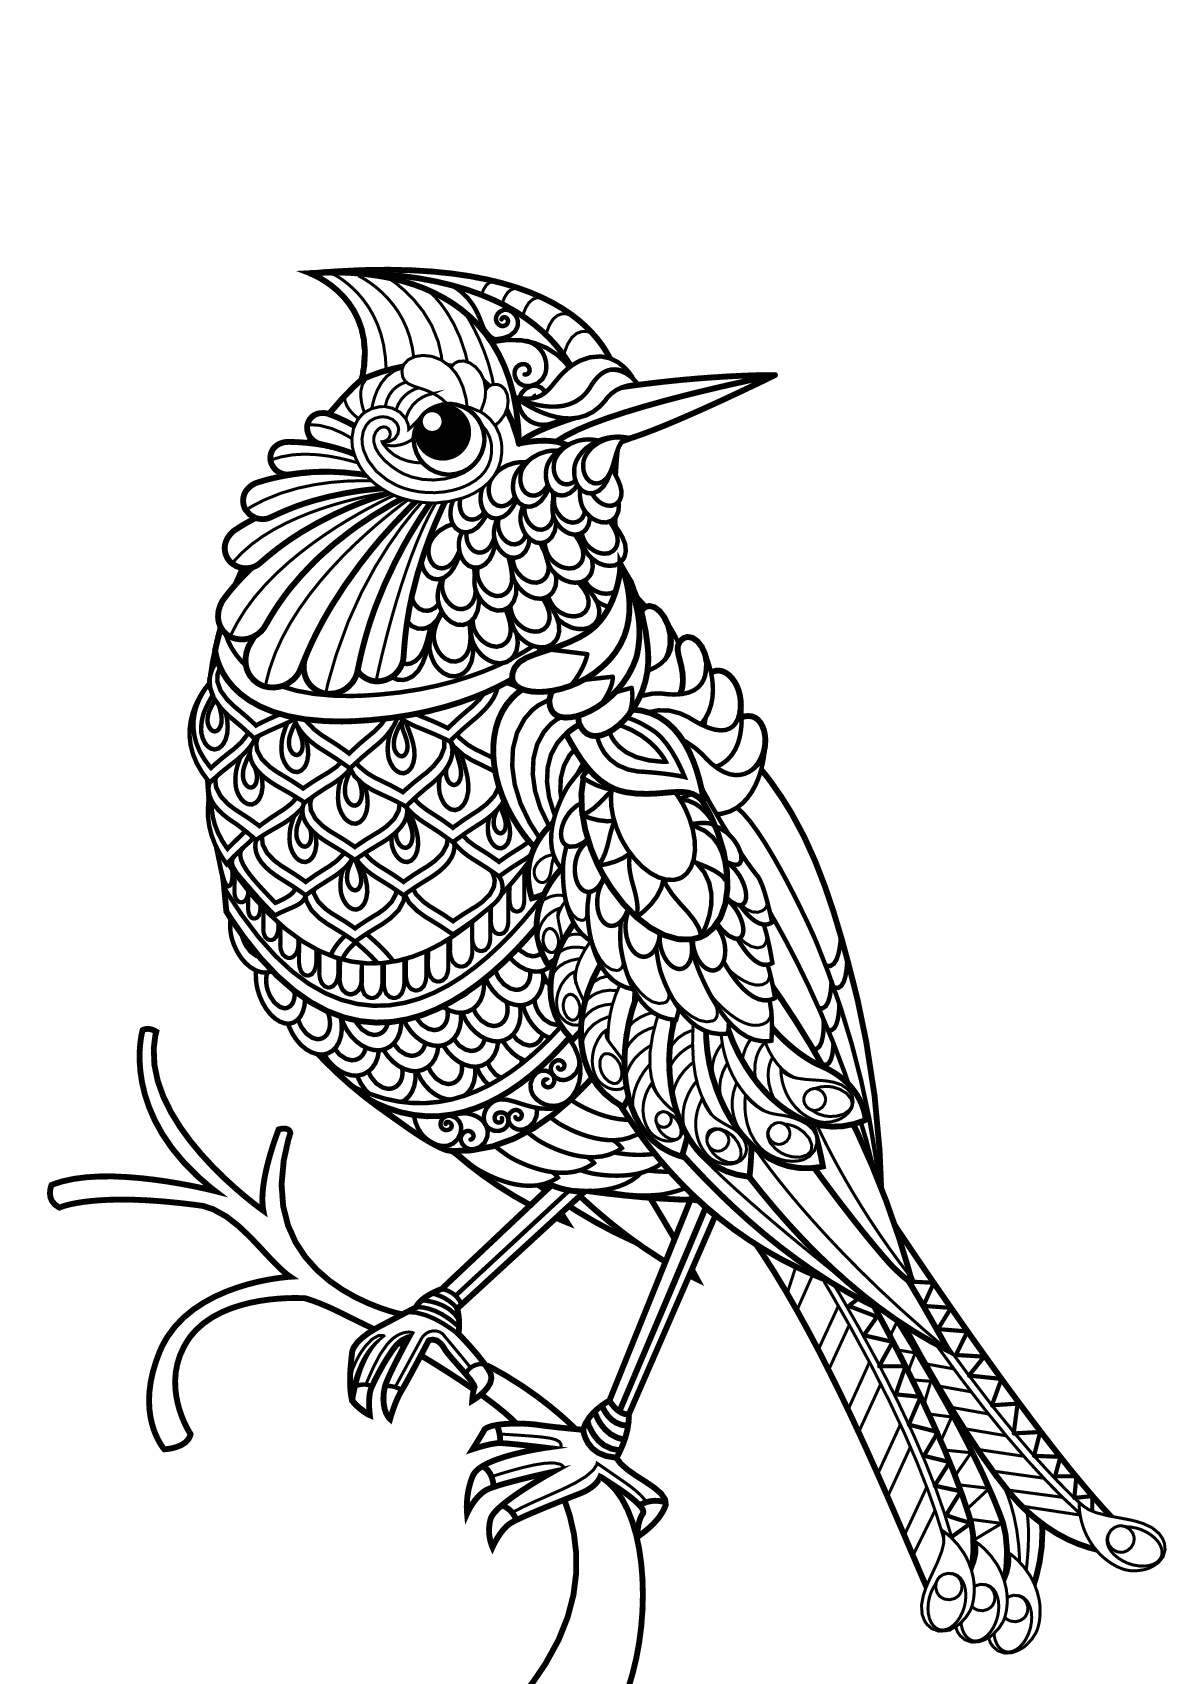 printable images of birds simple bird coloring pages at getdrawings free download birds images printable of